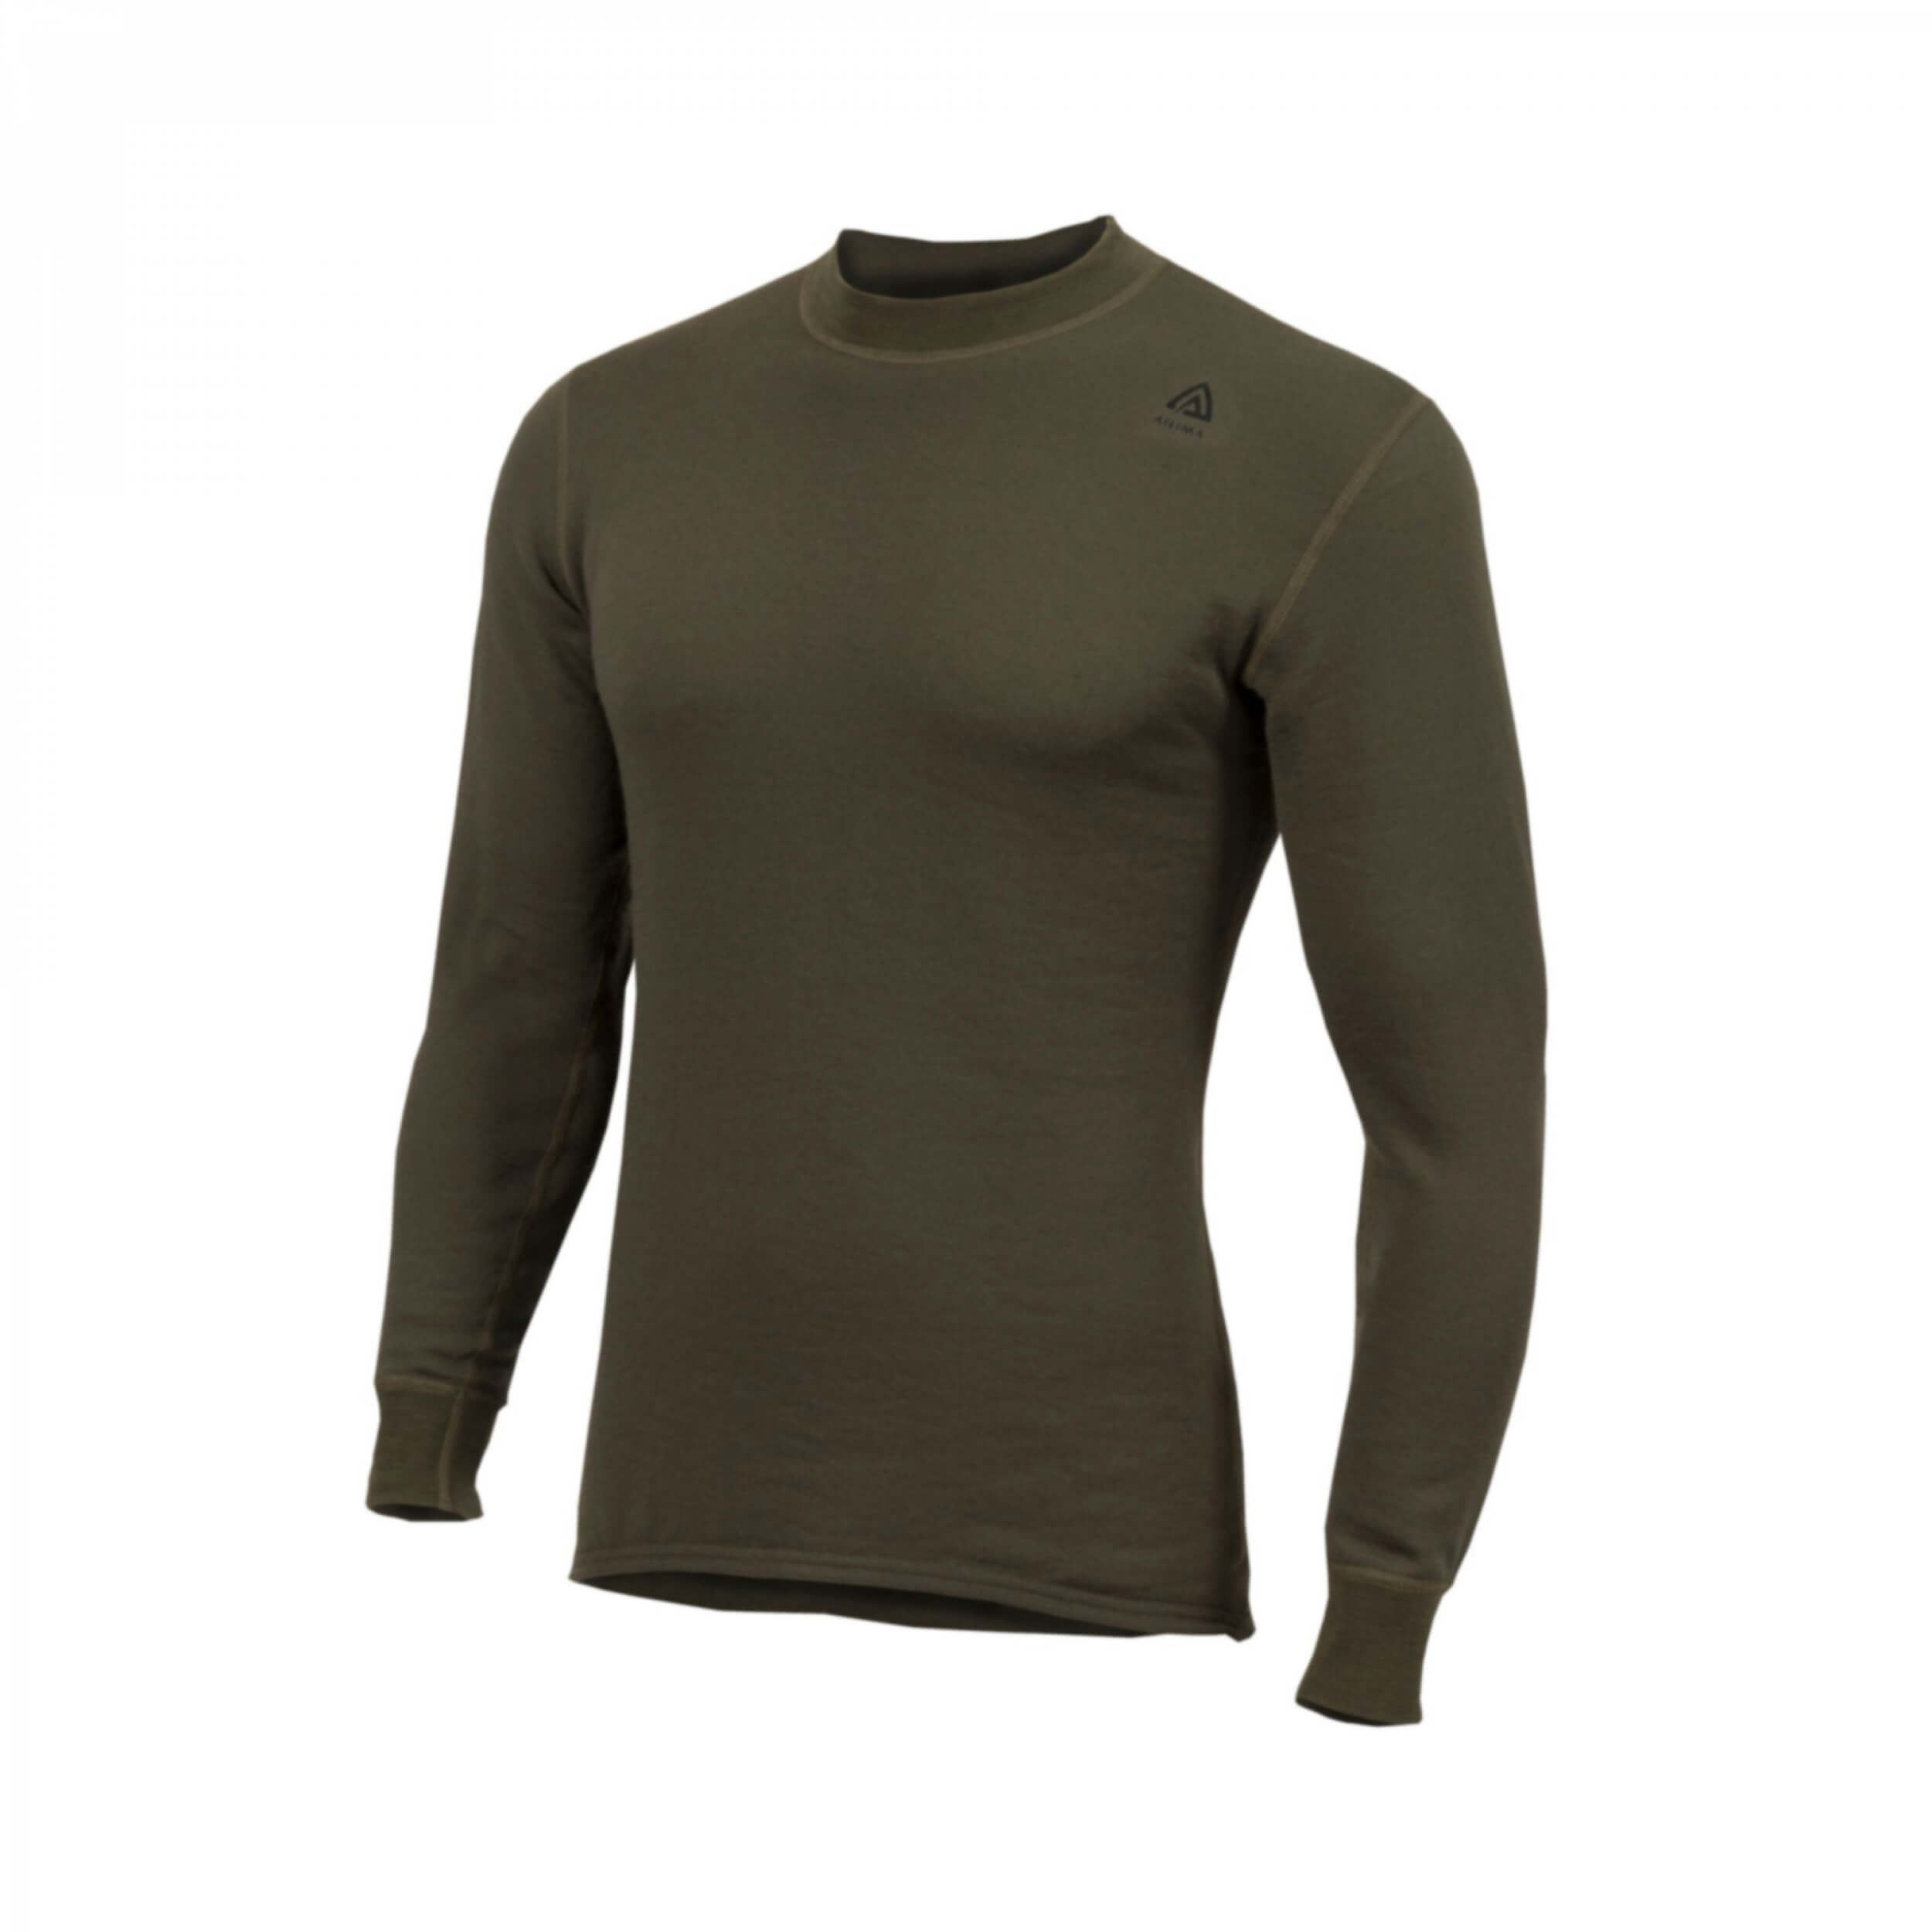 Aclima Hotwool Crew Neck olive